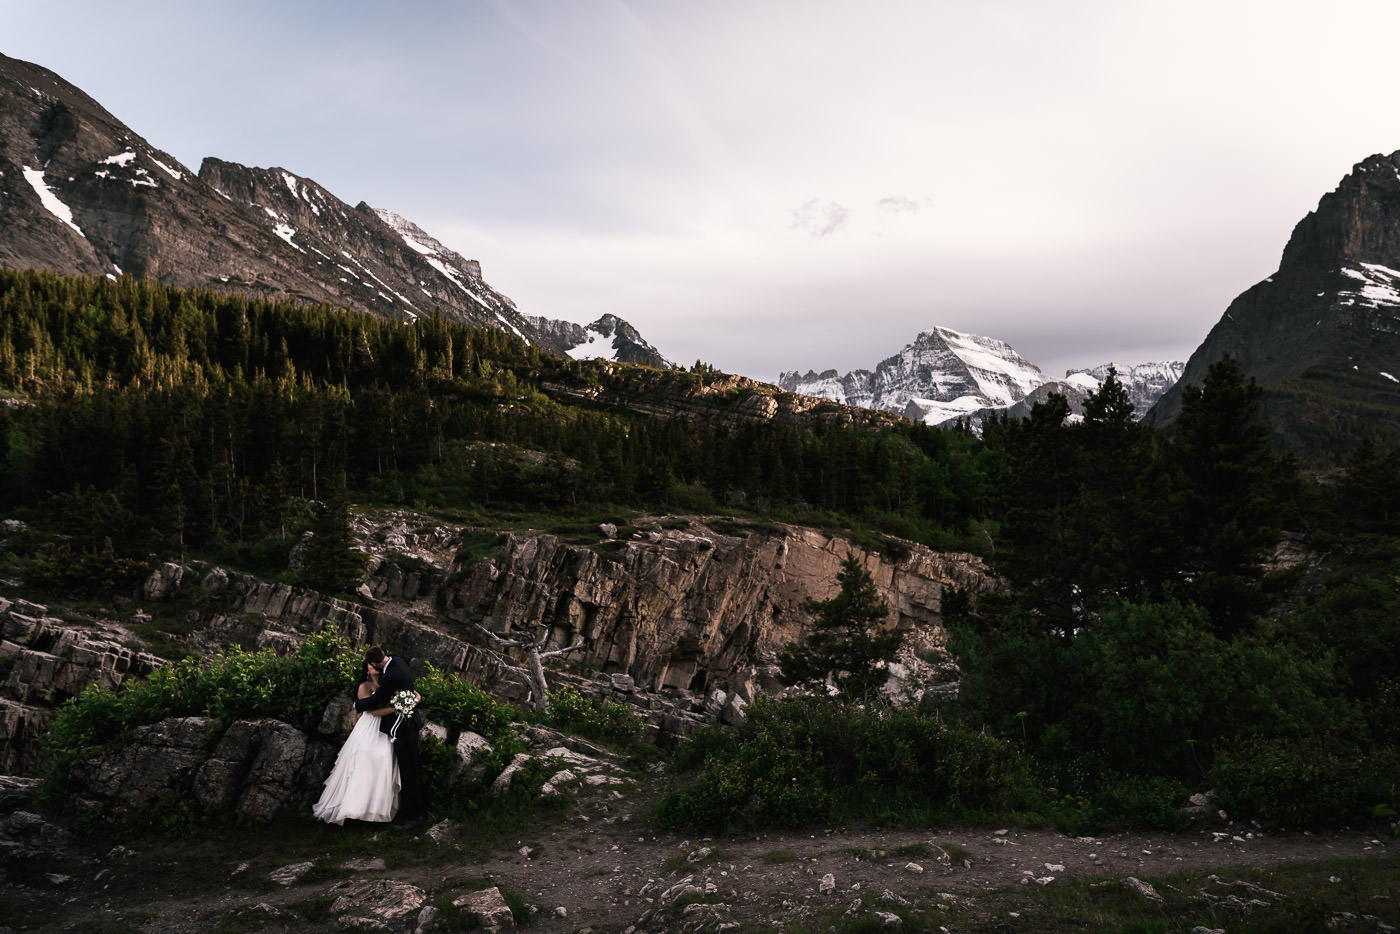 Glacier elopement Photography package - I simply can't get enough of photographing weddings in the stunning landscapes Glacier provides. Whether you're planning a wedding near the park, or an elopement out in the wilderness, you'll find an all day wedding photography package perfect for your love story below. Take me on your adventure, and we'll create something truly spectacular.